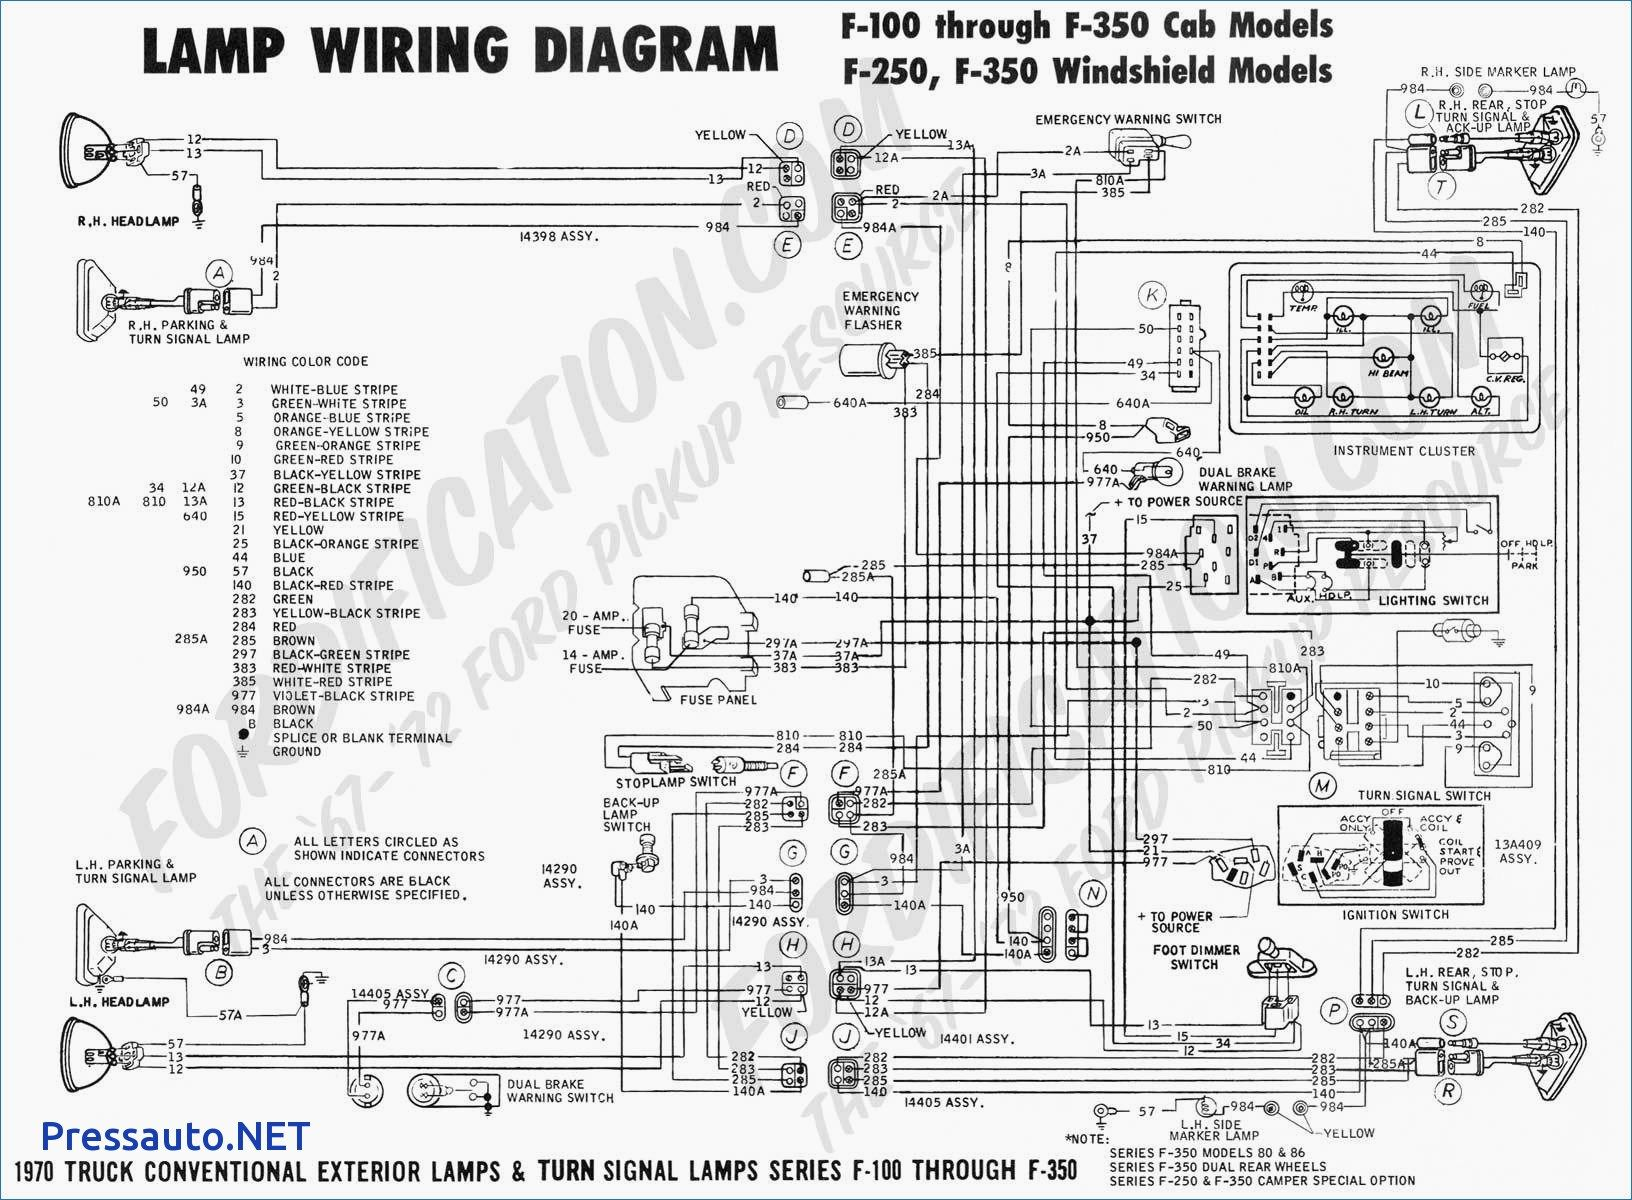 2002 F350 Turn Signal Wiring Diagram Diagrams Schematics Inside Ford F250 |  Trailer wiring diagram, Electrical diagram, Electrical wiring diagram | Ford F 350 Dash Lights Wiring Diagram |  | Pinterest